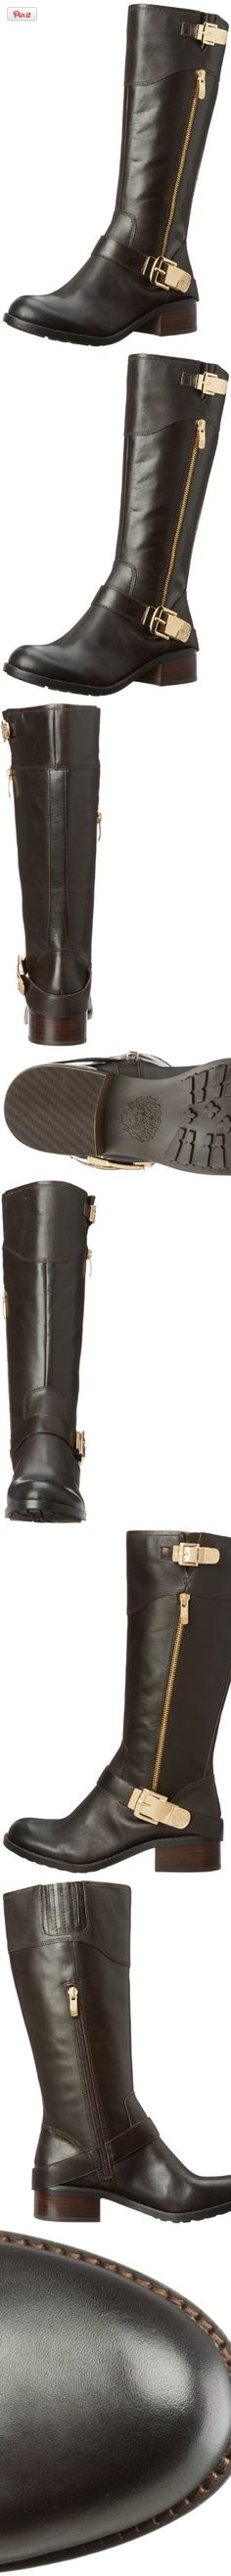 Vince Camuto Women's Waymin Motorcycle Boot,Fudge Brownie,6.5 M US- My new boots from 6PM.  Love them!